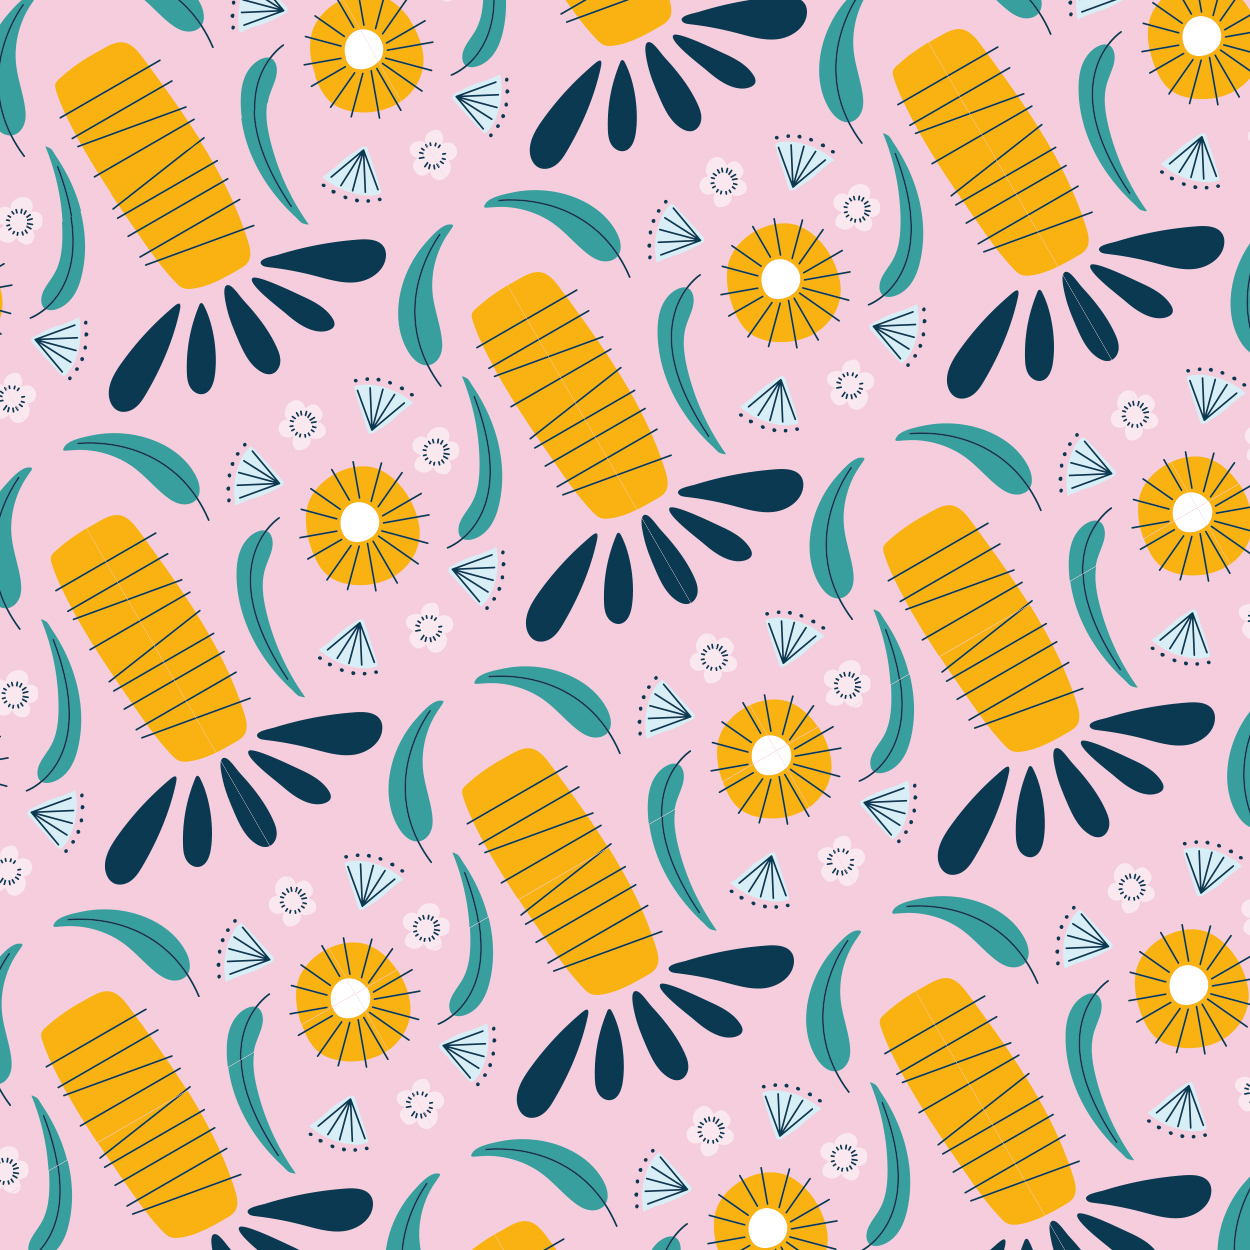 Wedding custom floral midcentury pattern